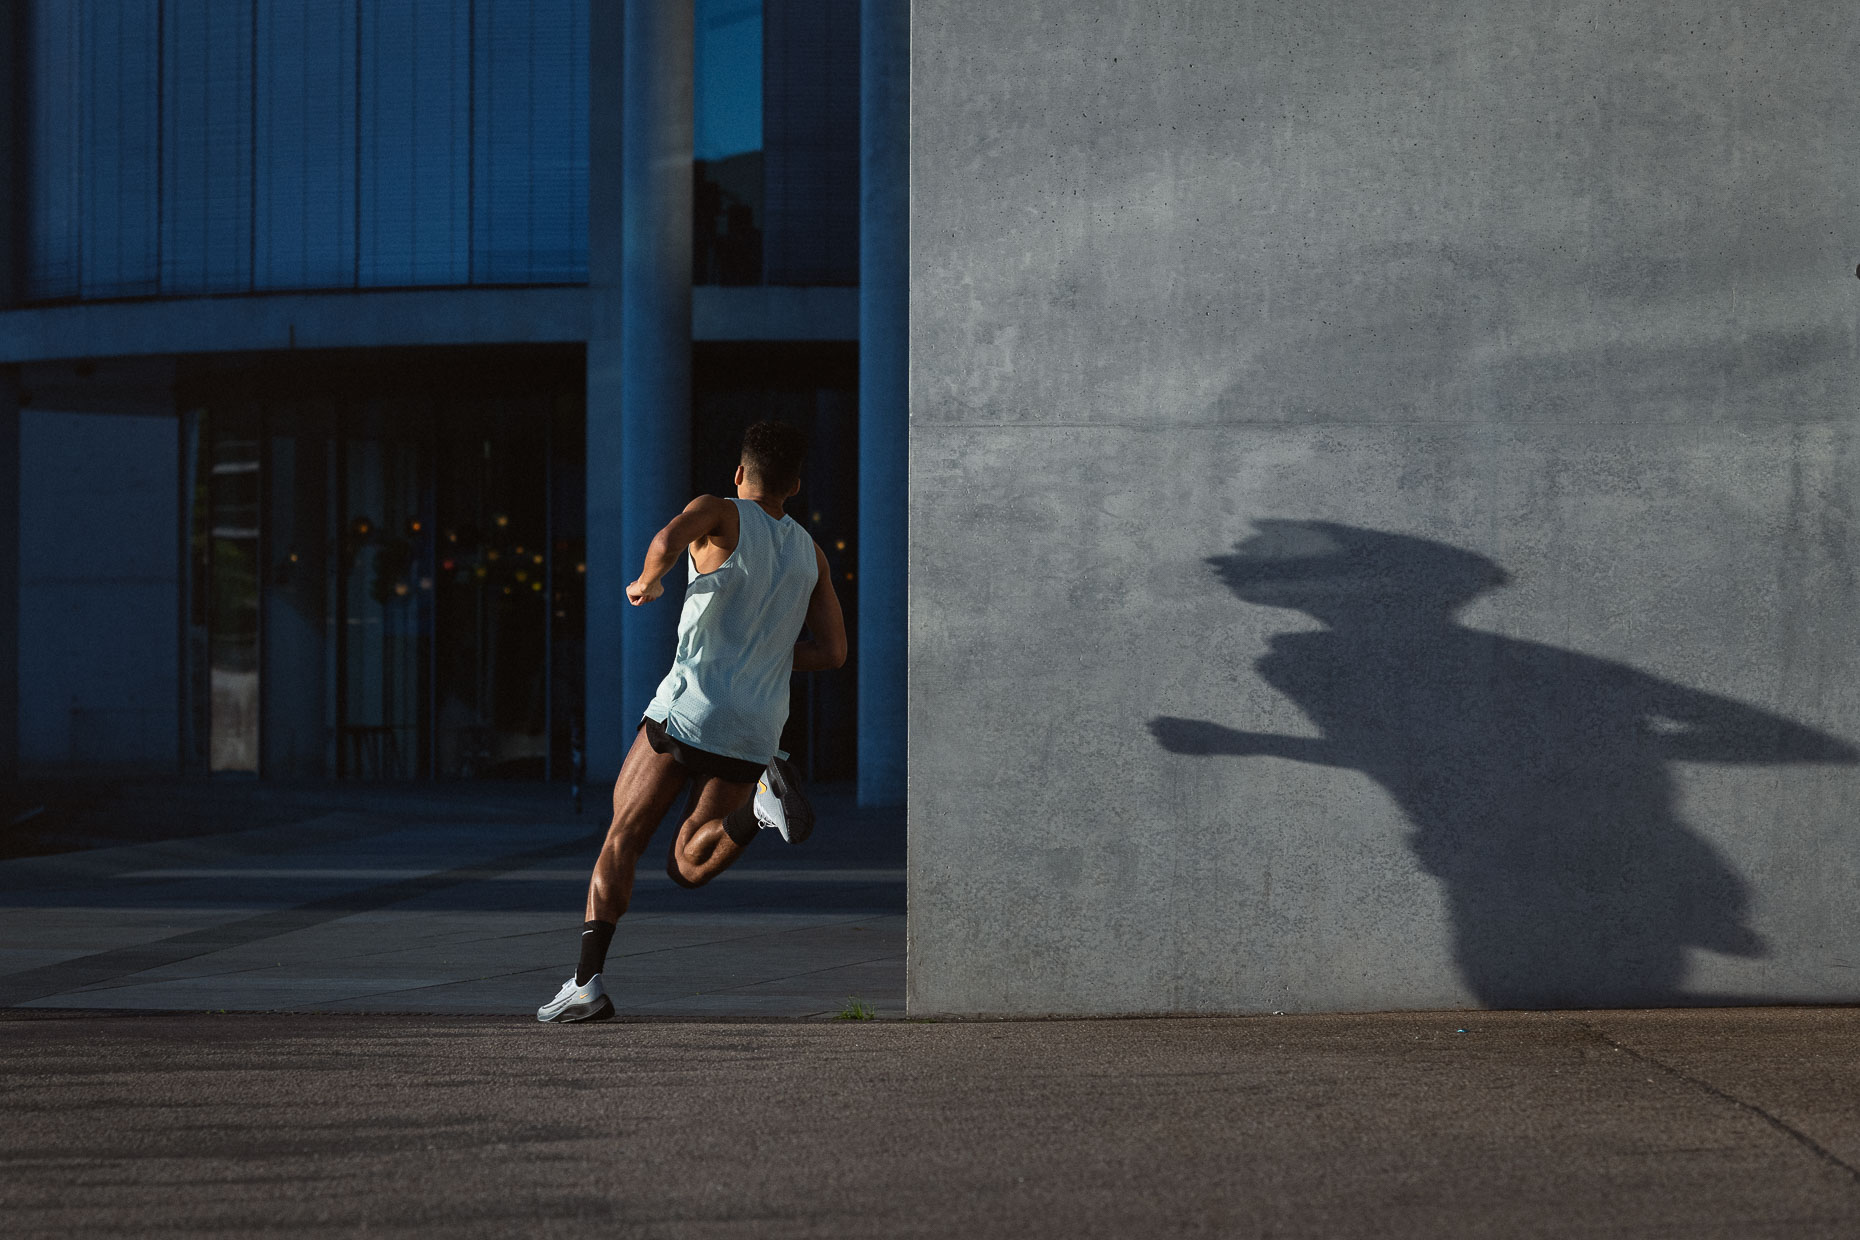 Nike_Running_Berlin_Shadow_Pack_31_07_2020_c_Brecheis-8104